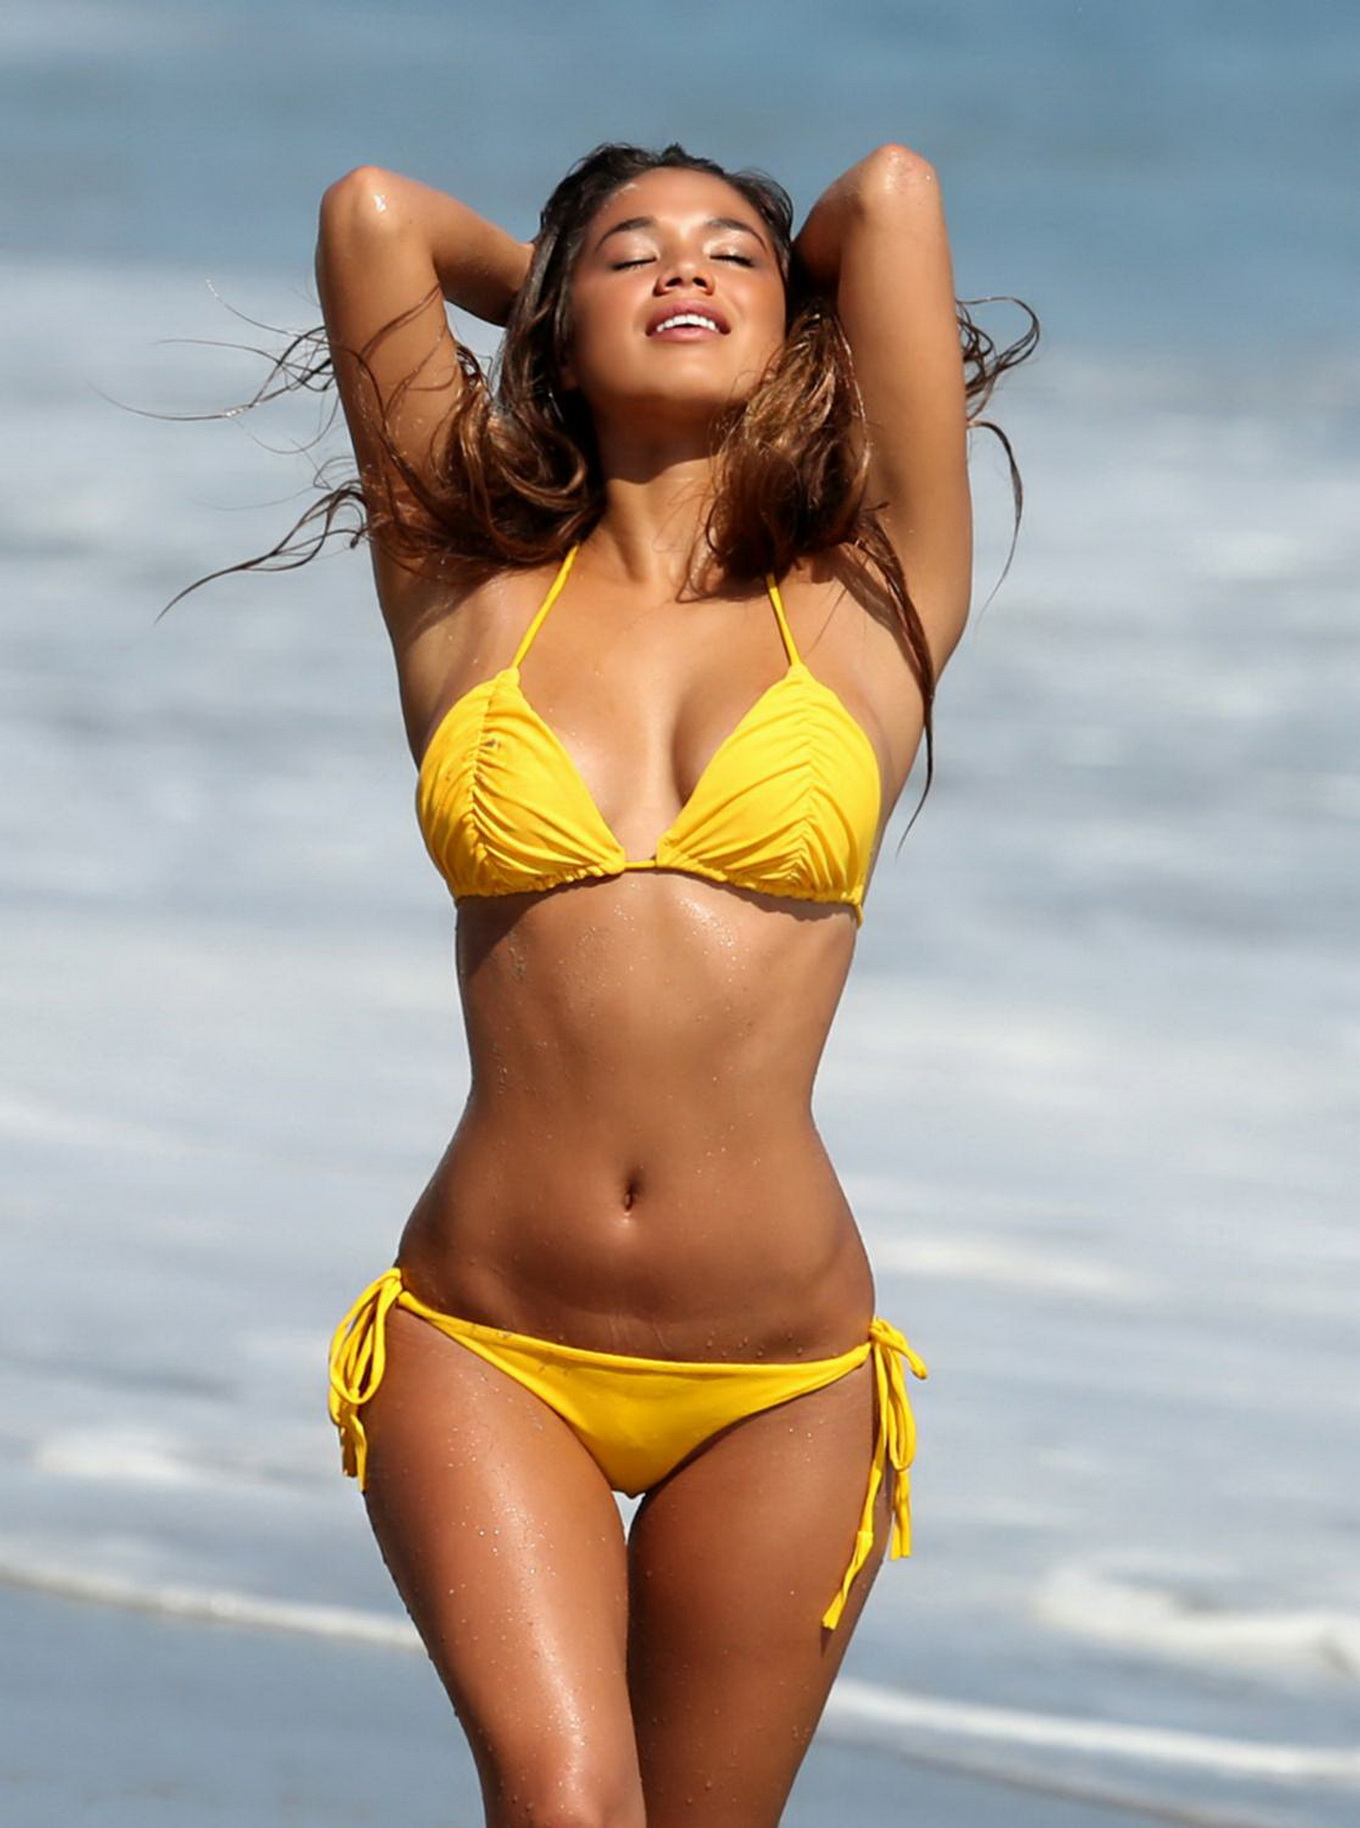 eryn krouse wearing tiny yellow bikini at the beach for 138 water